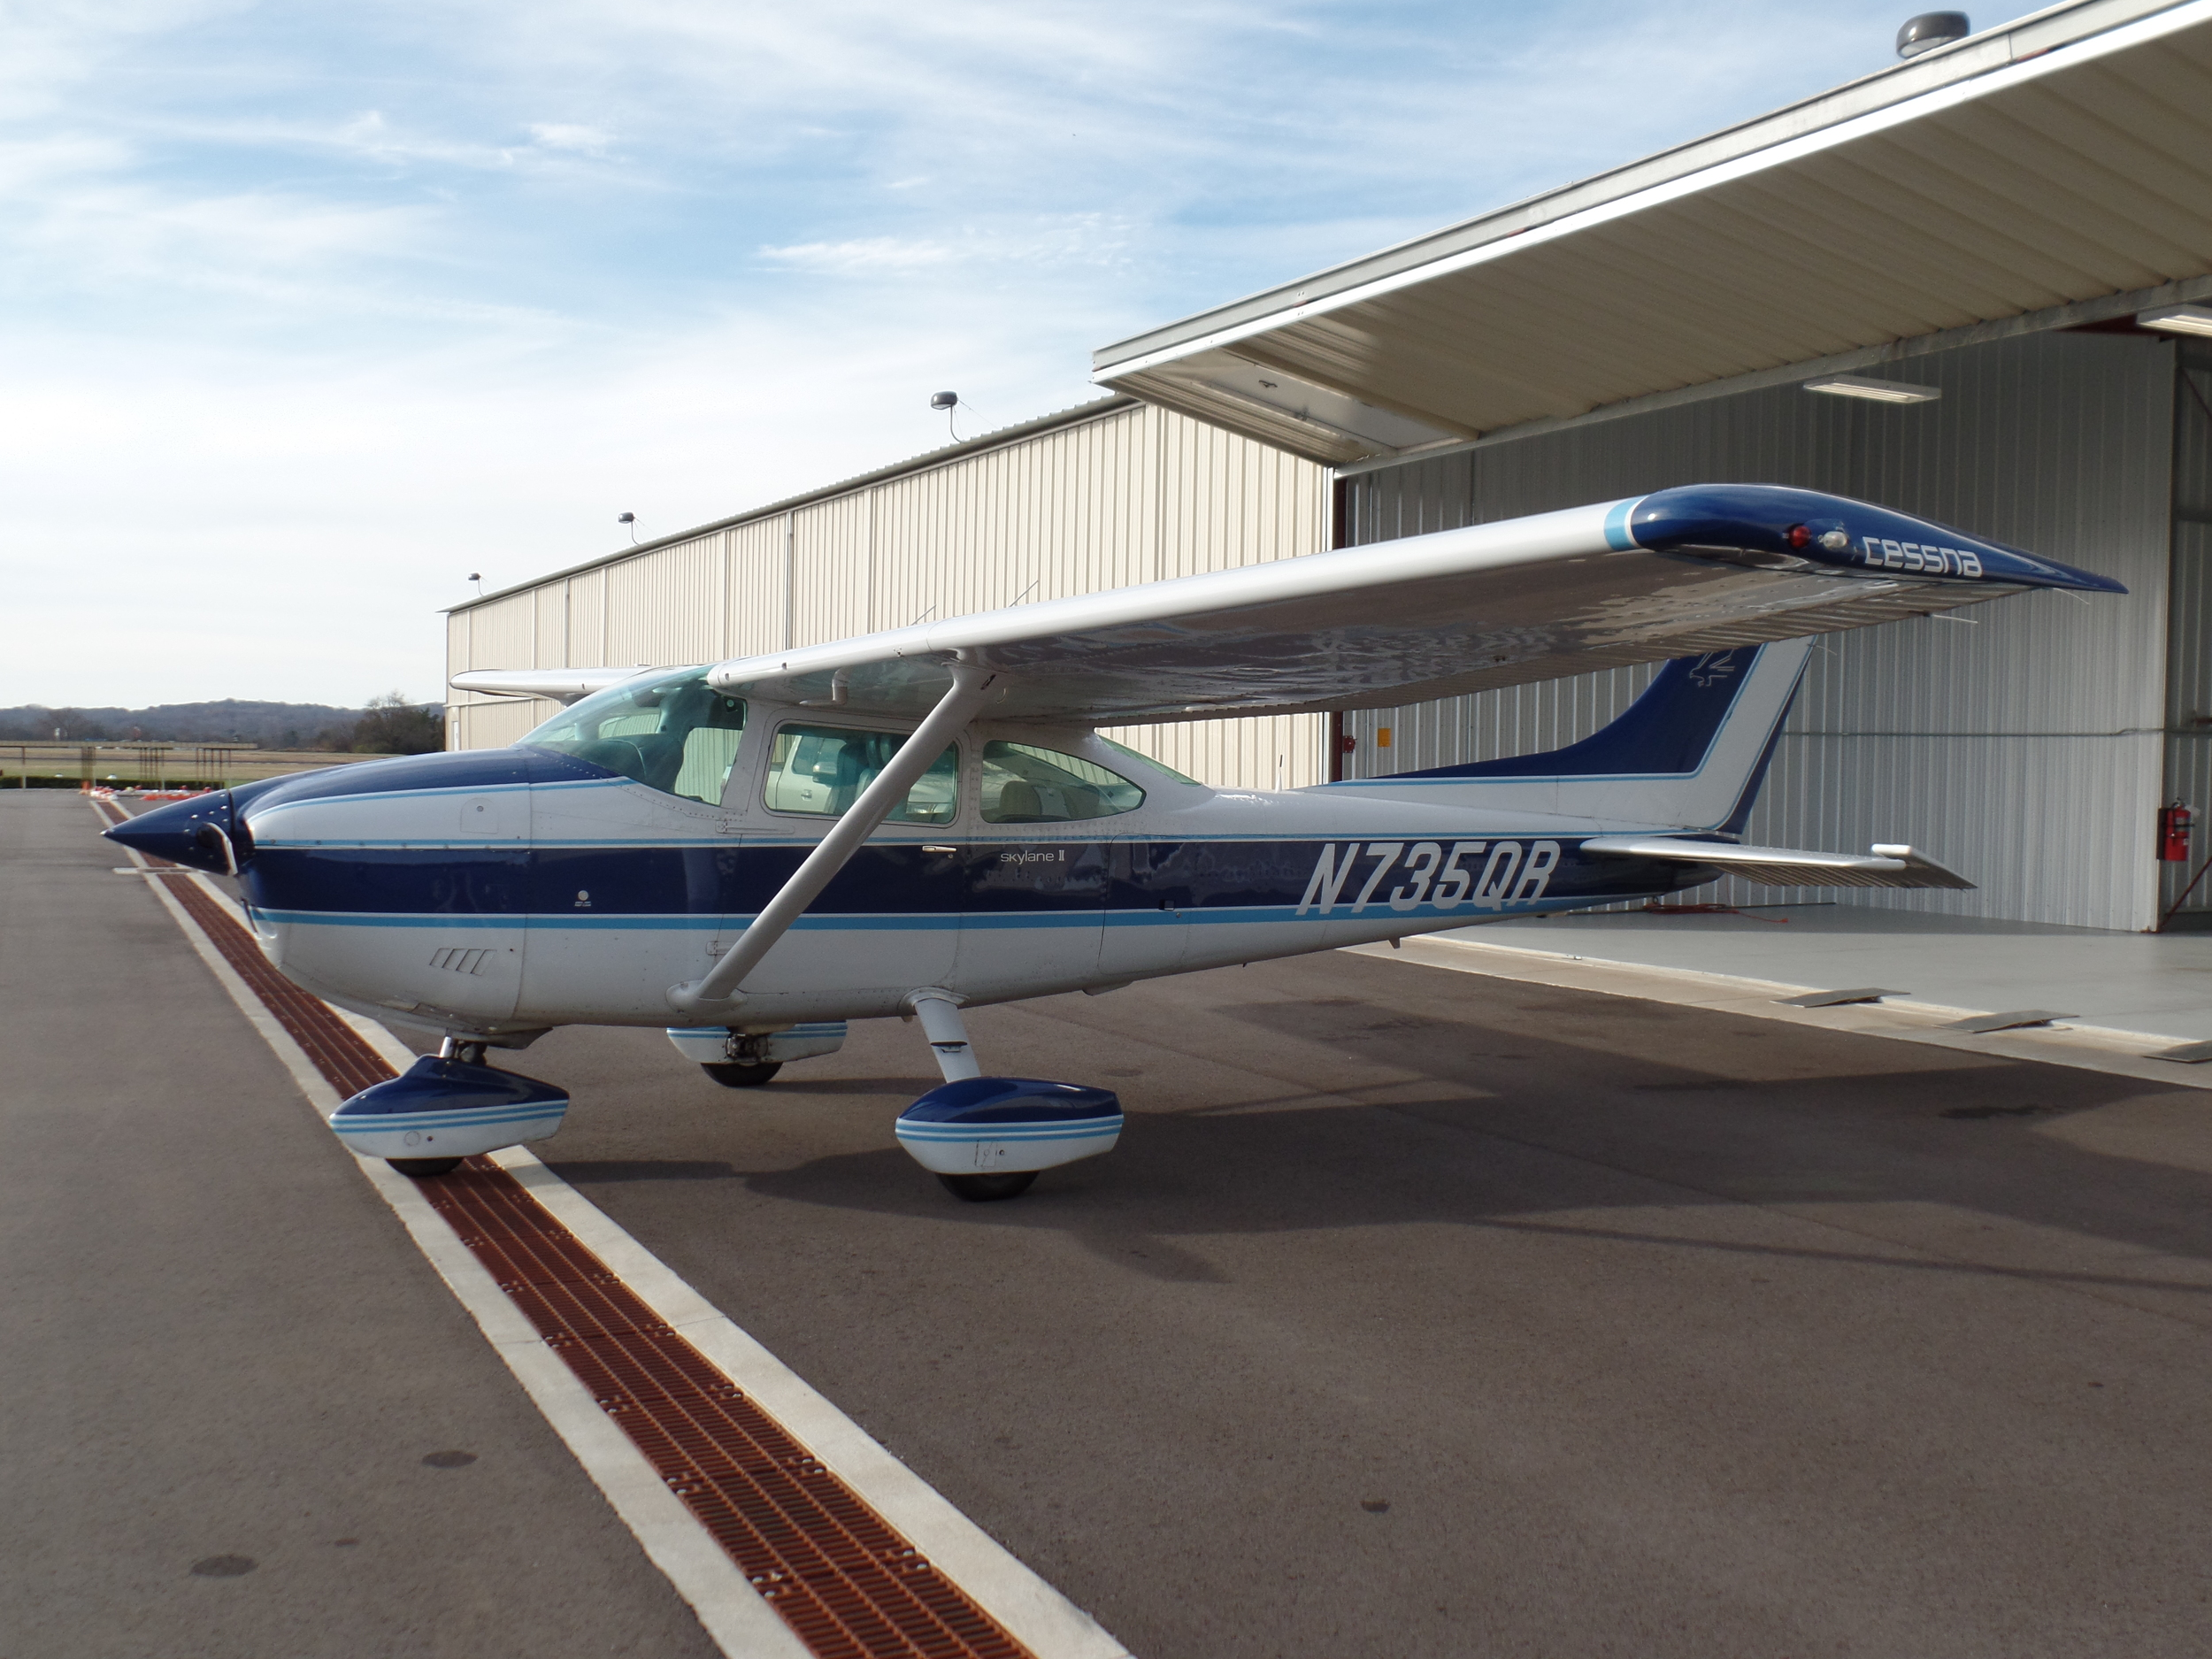 N735QR - Our well-maintained and capable Cessna 182Q